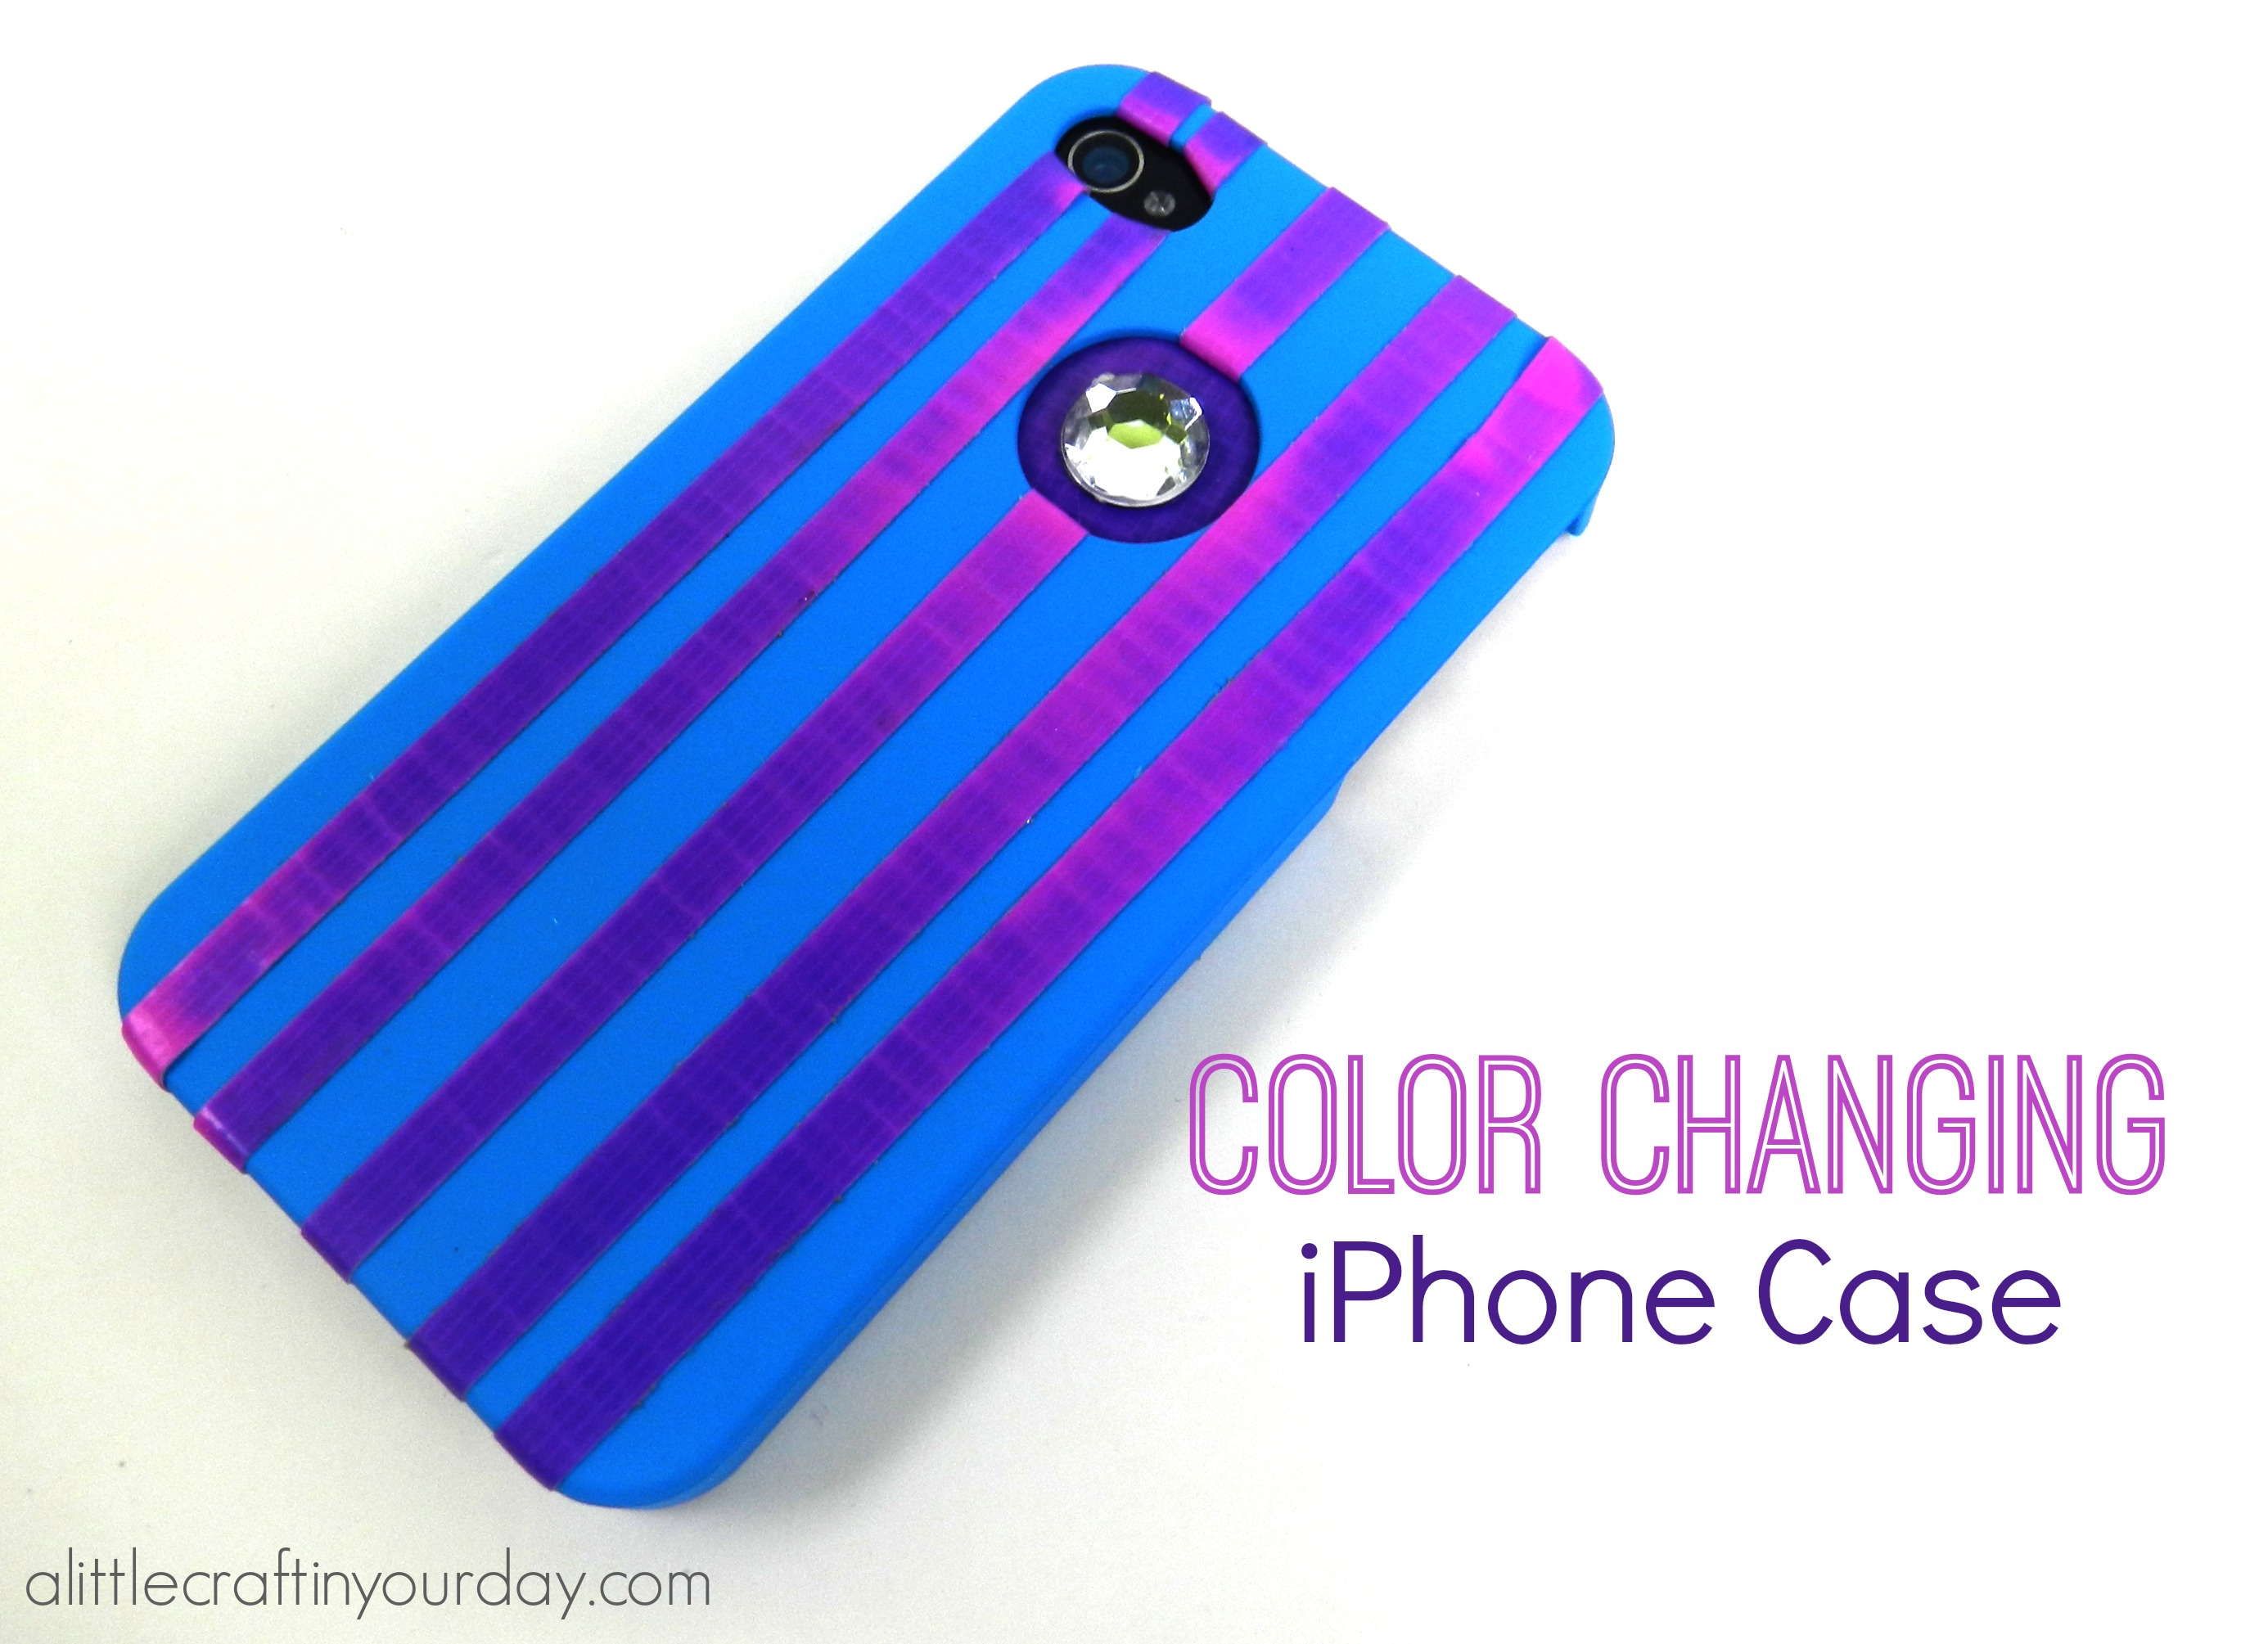 color changing iphone case a little craft in your daya